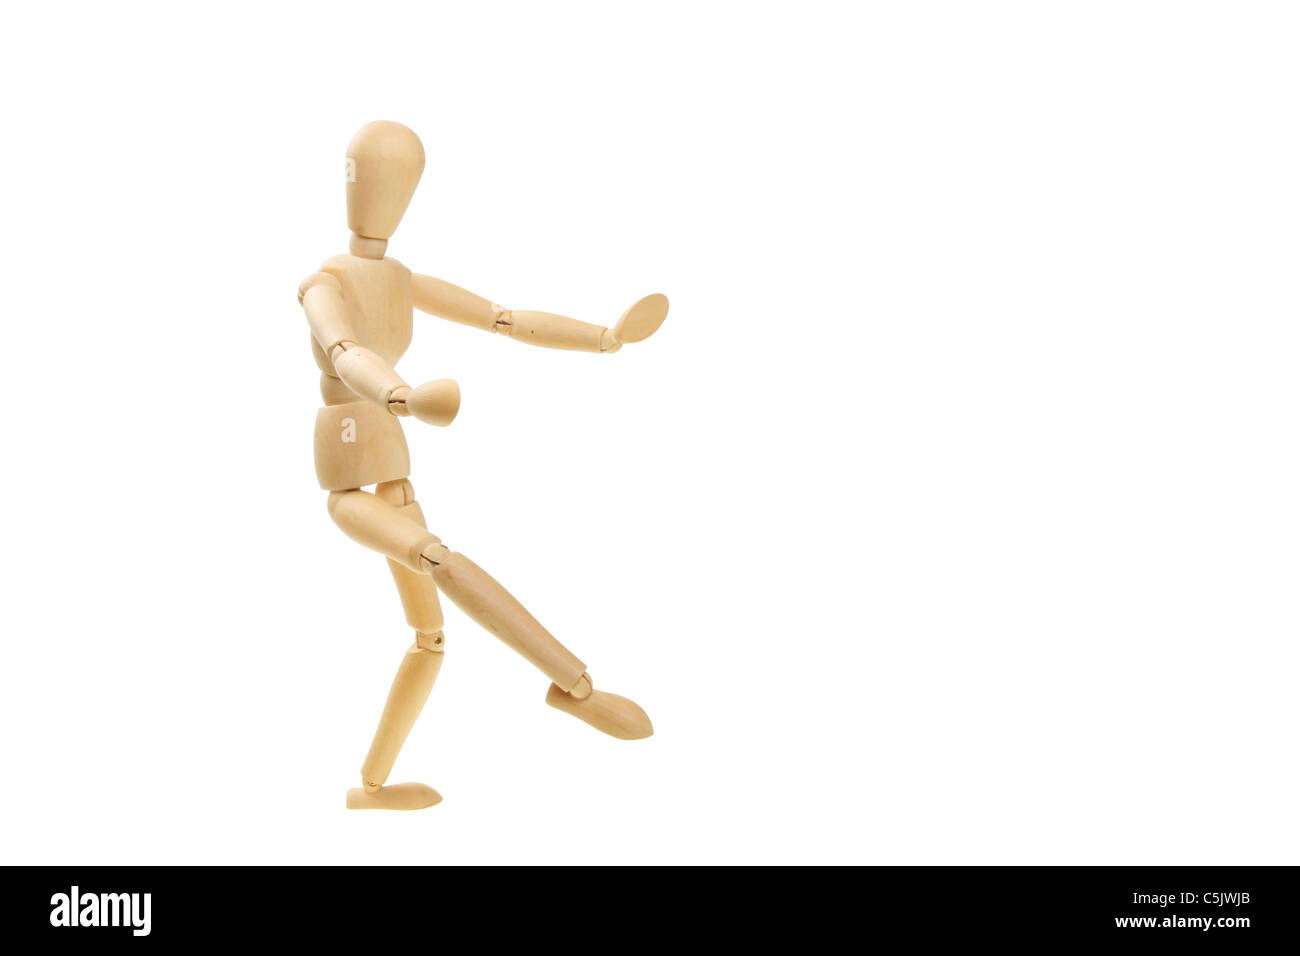 Artist's wooden mannequin in a dancing pose - Stock Image